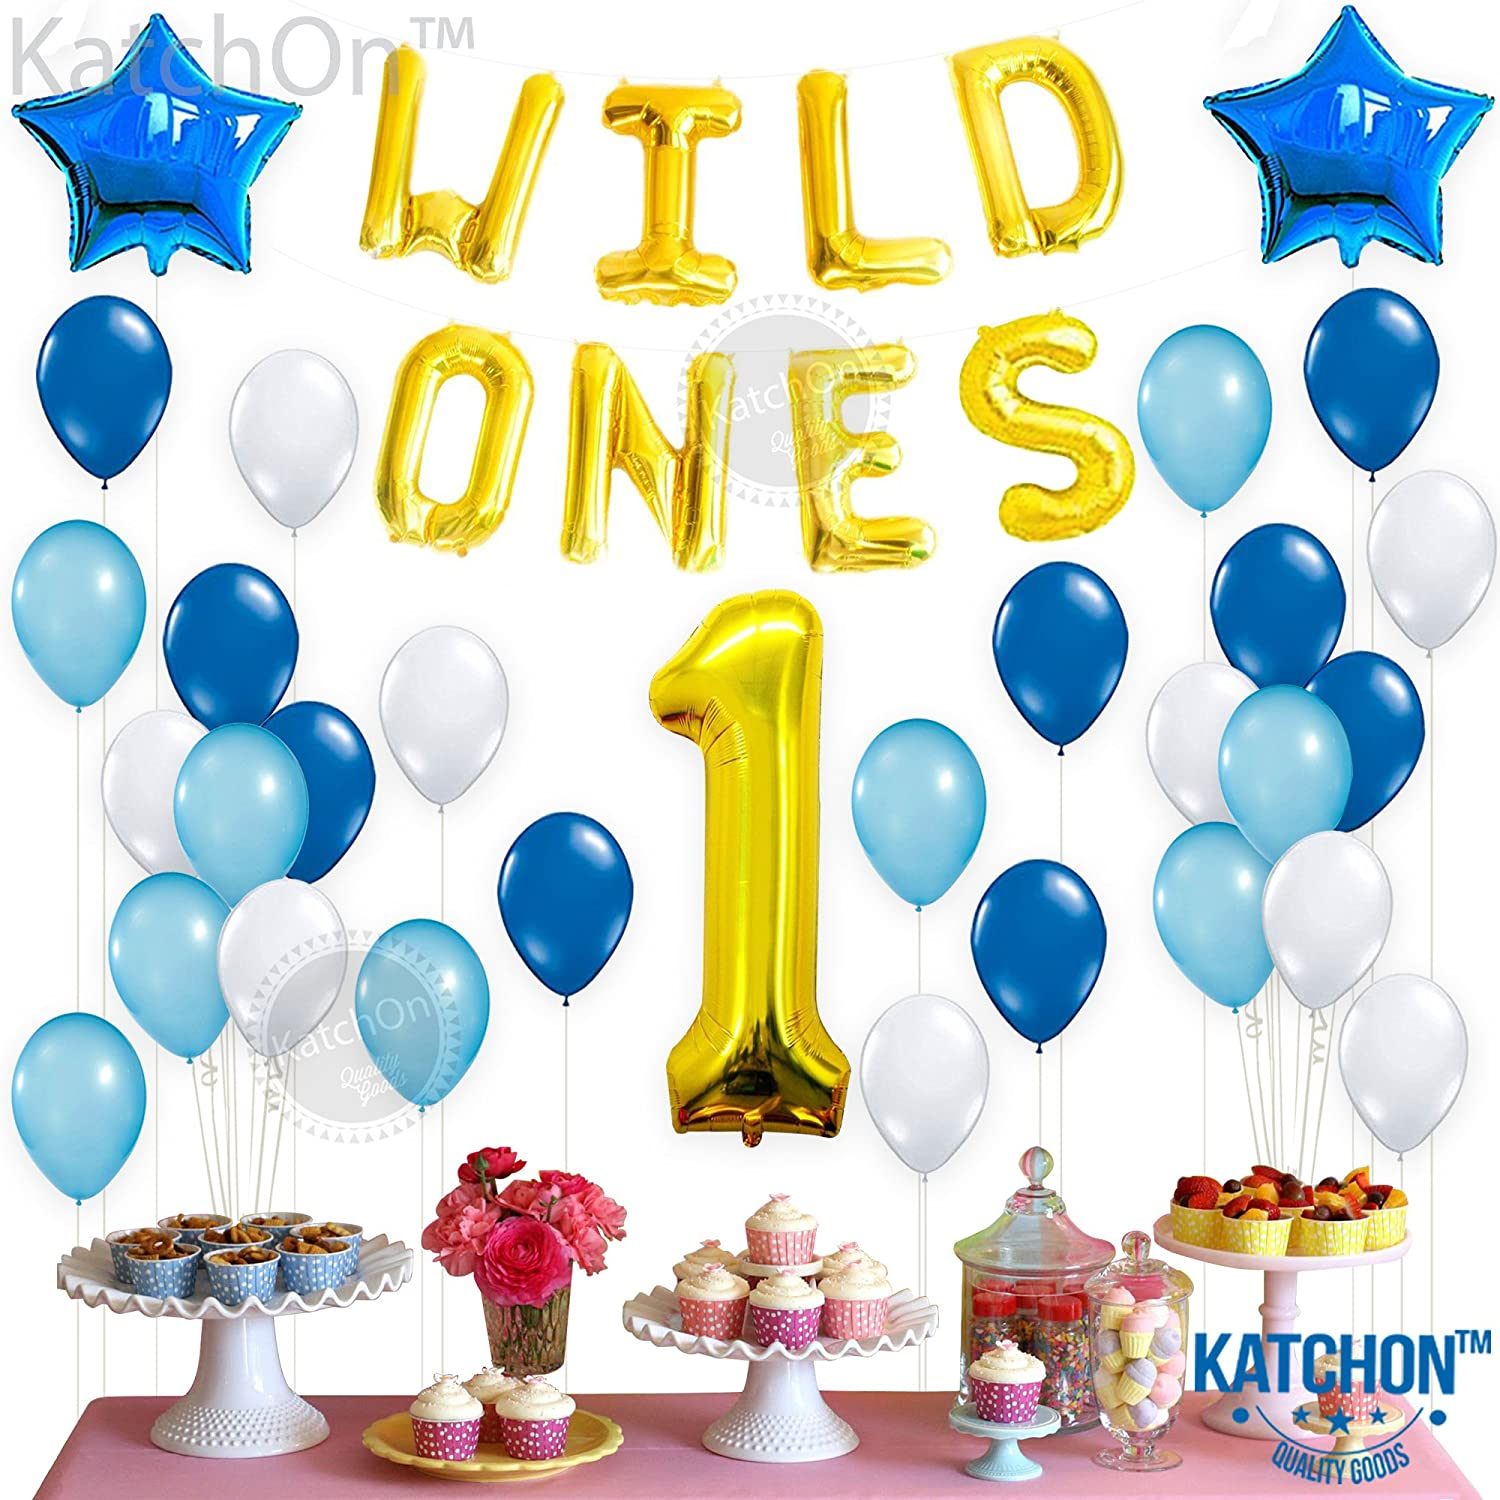 Amazon.com: WILD ONES BIRTHDAY DECORATION KIT - Blue and White ...